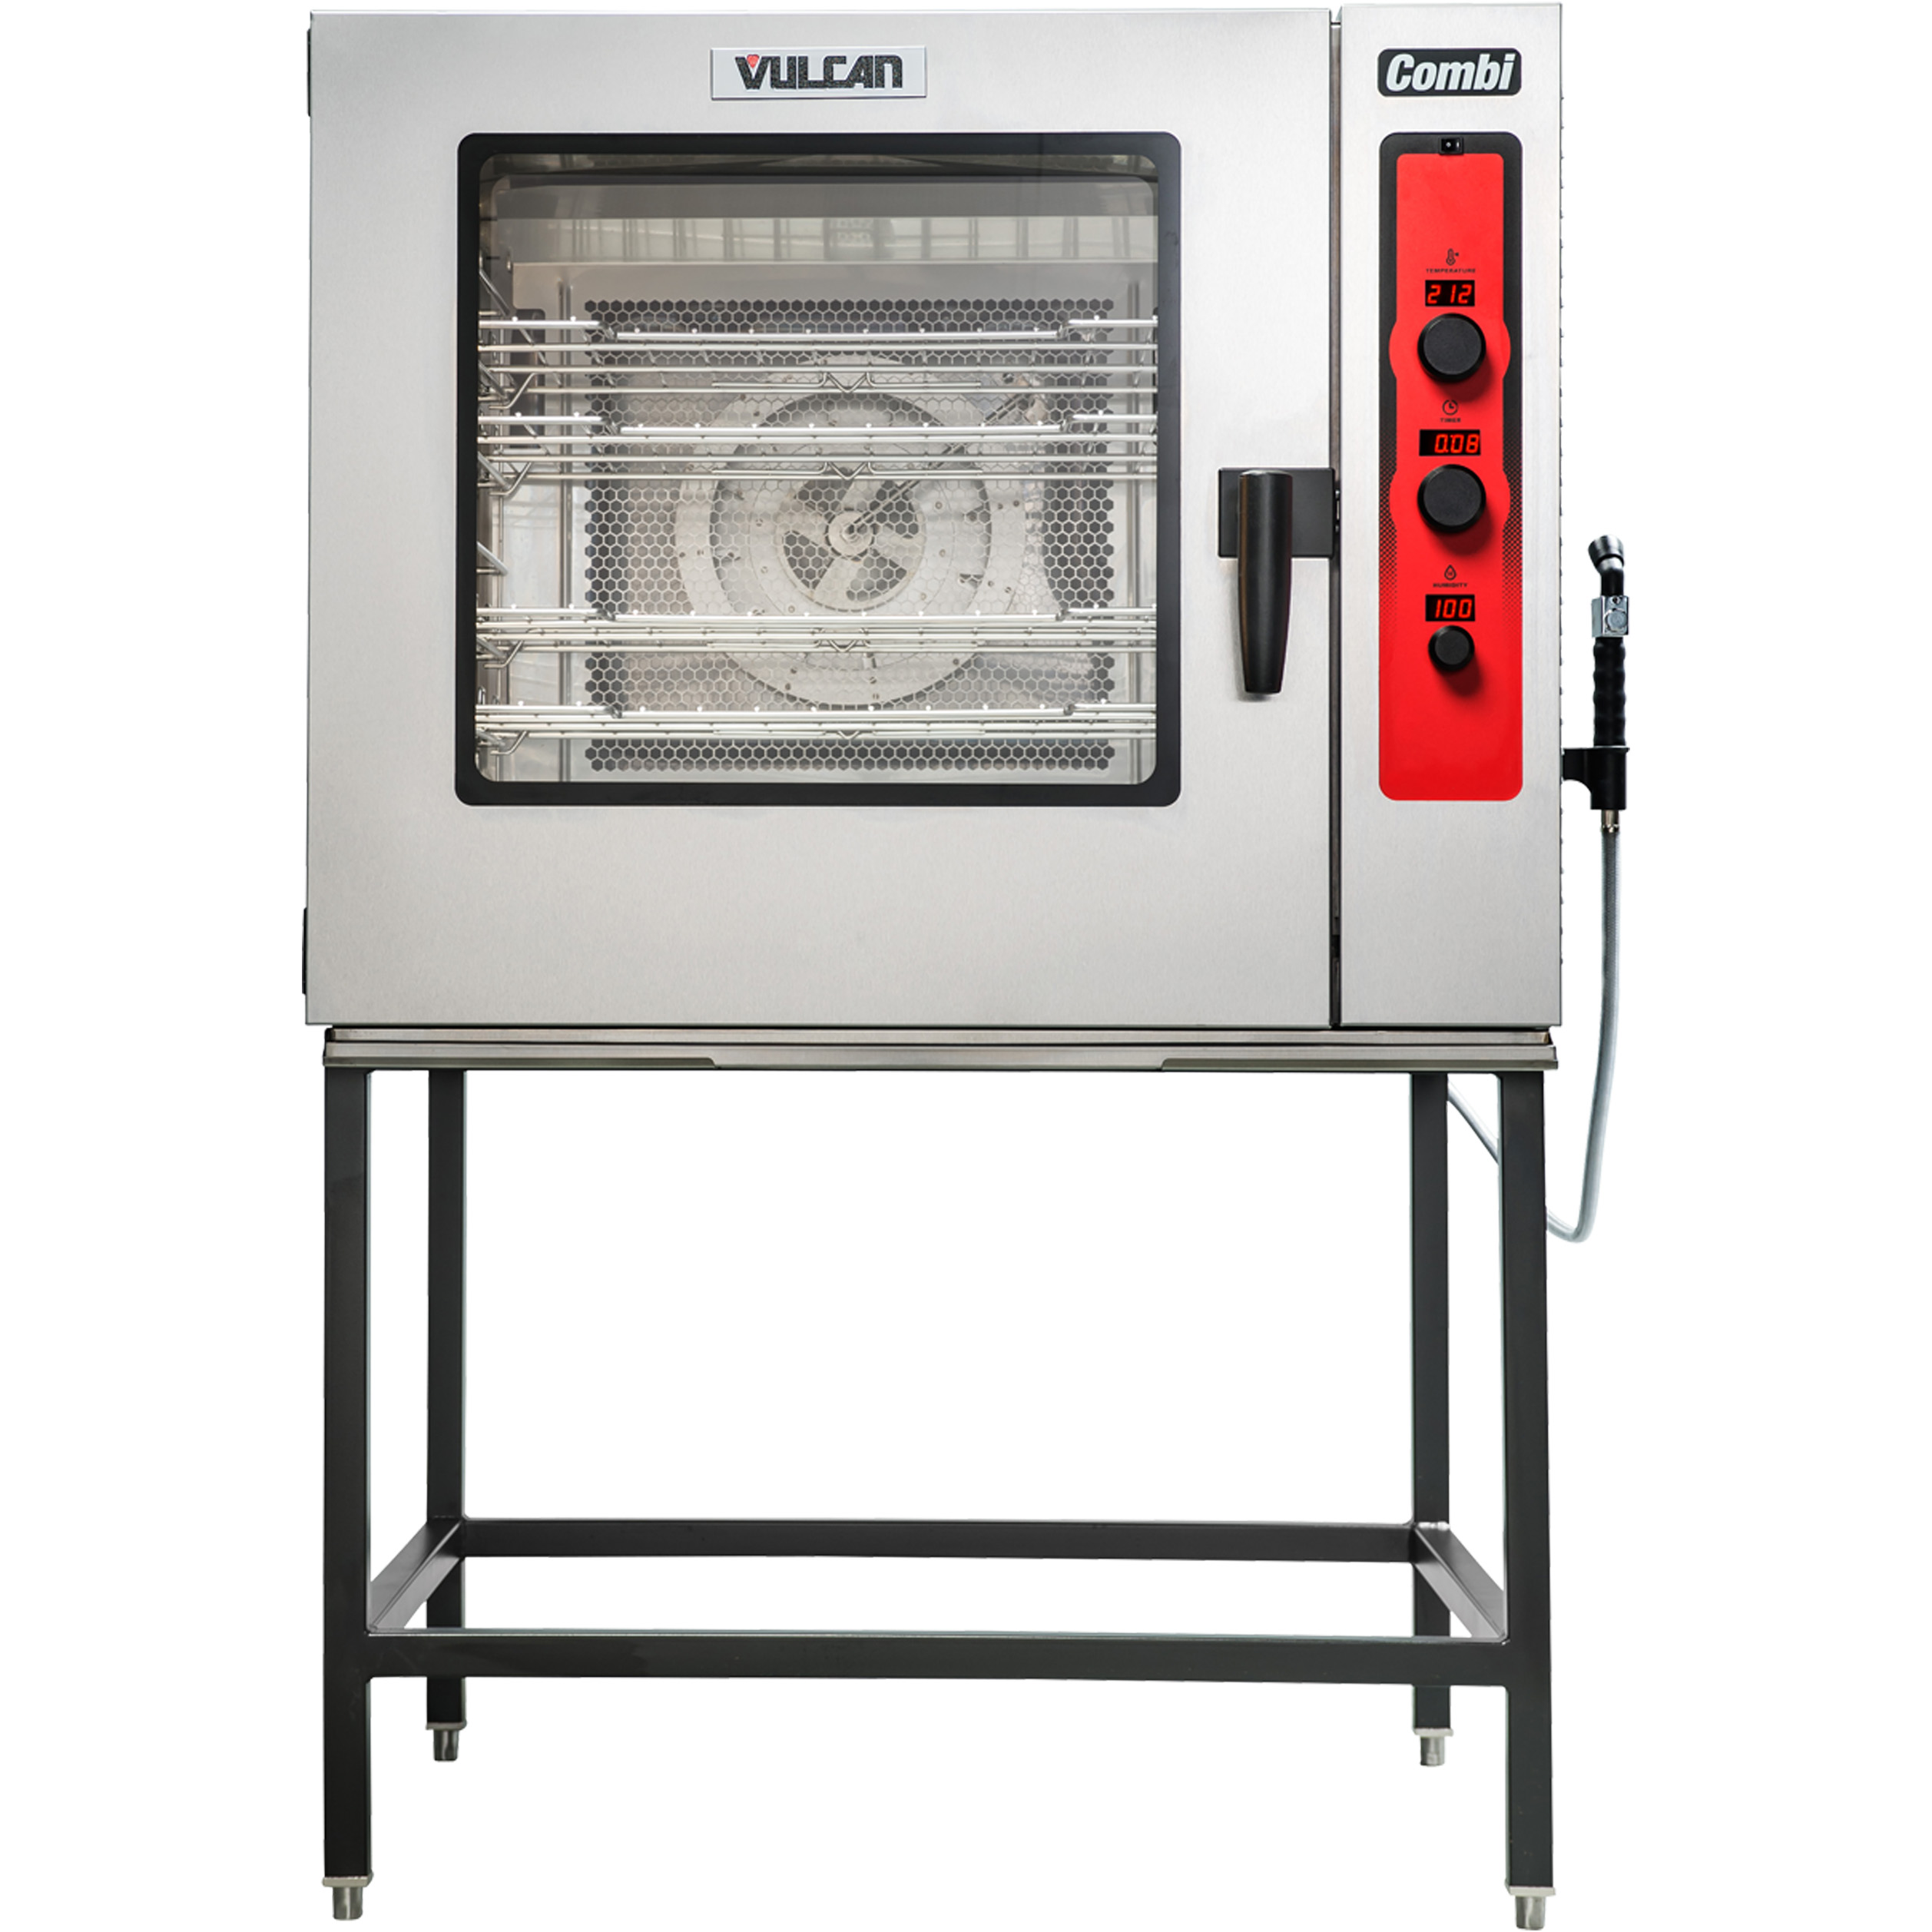 Vulcan ABC7G-PRO combi oven, gas